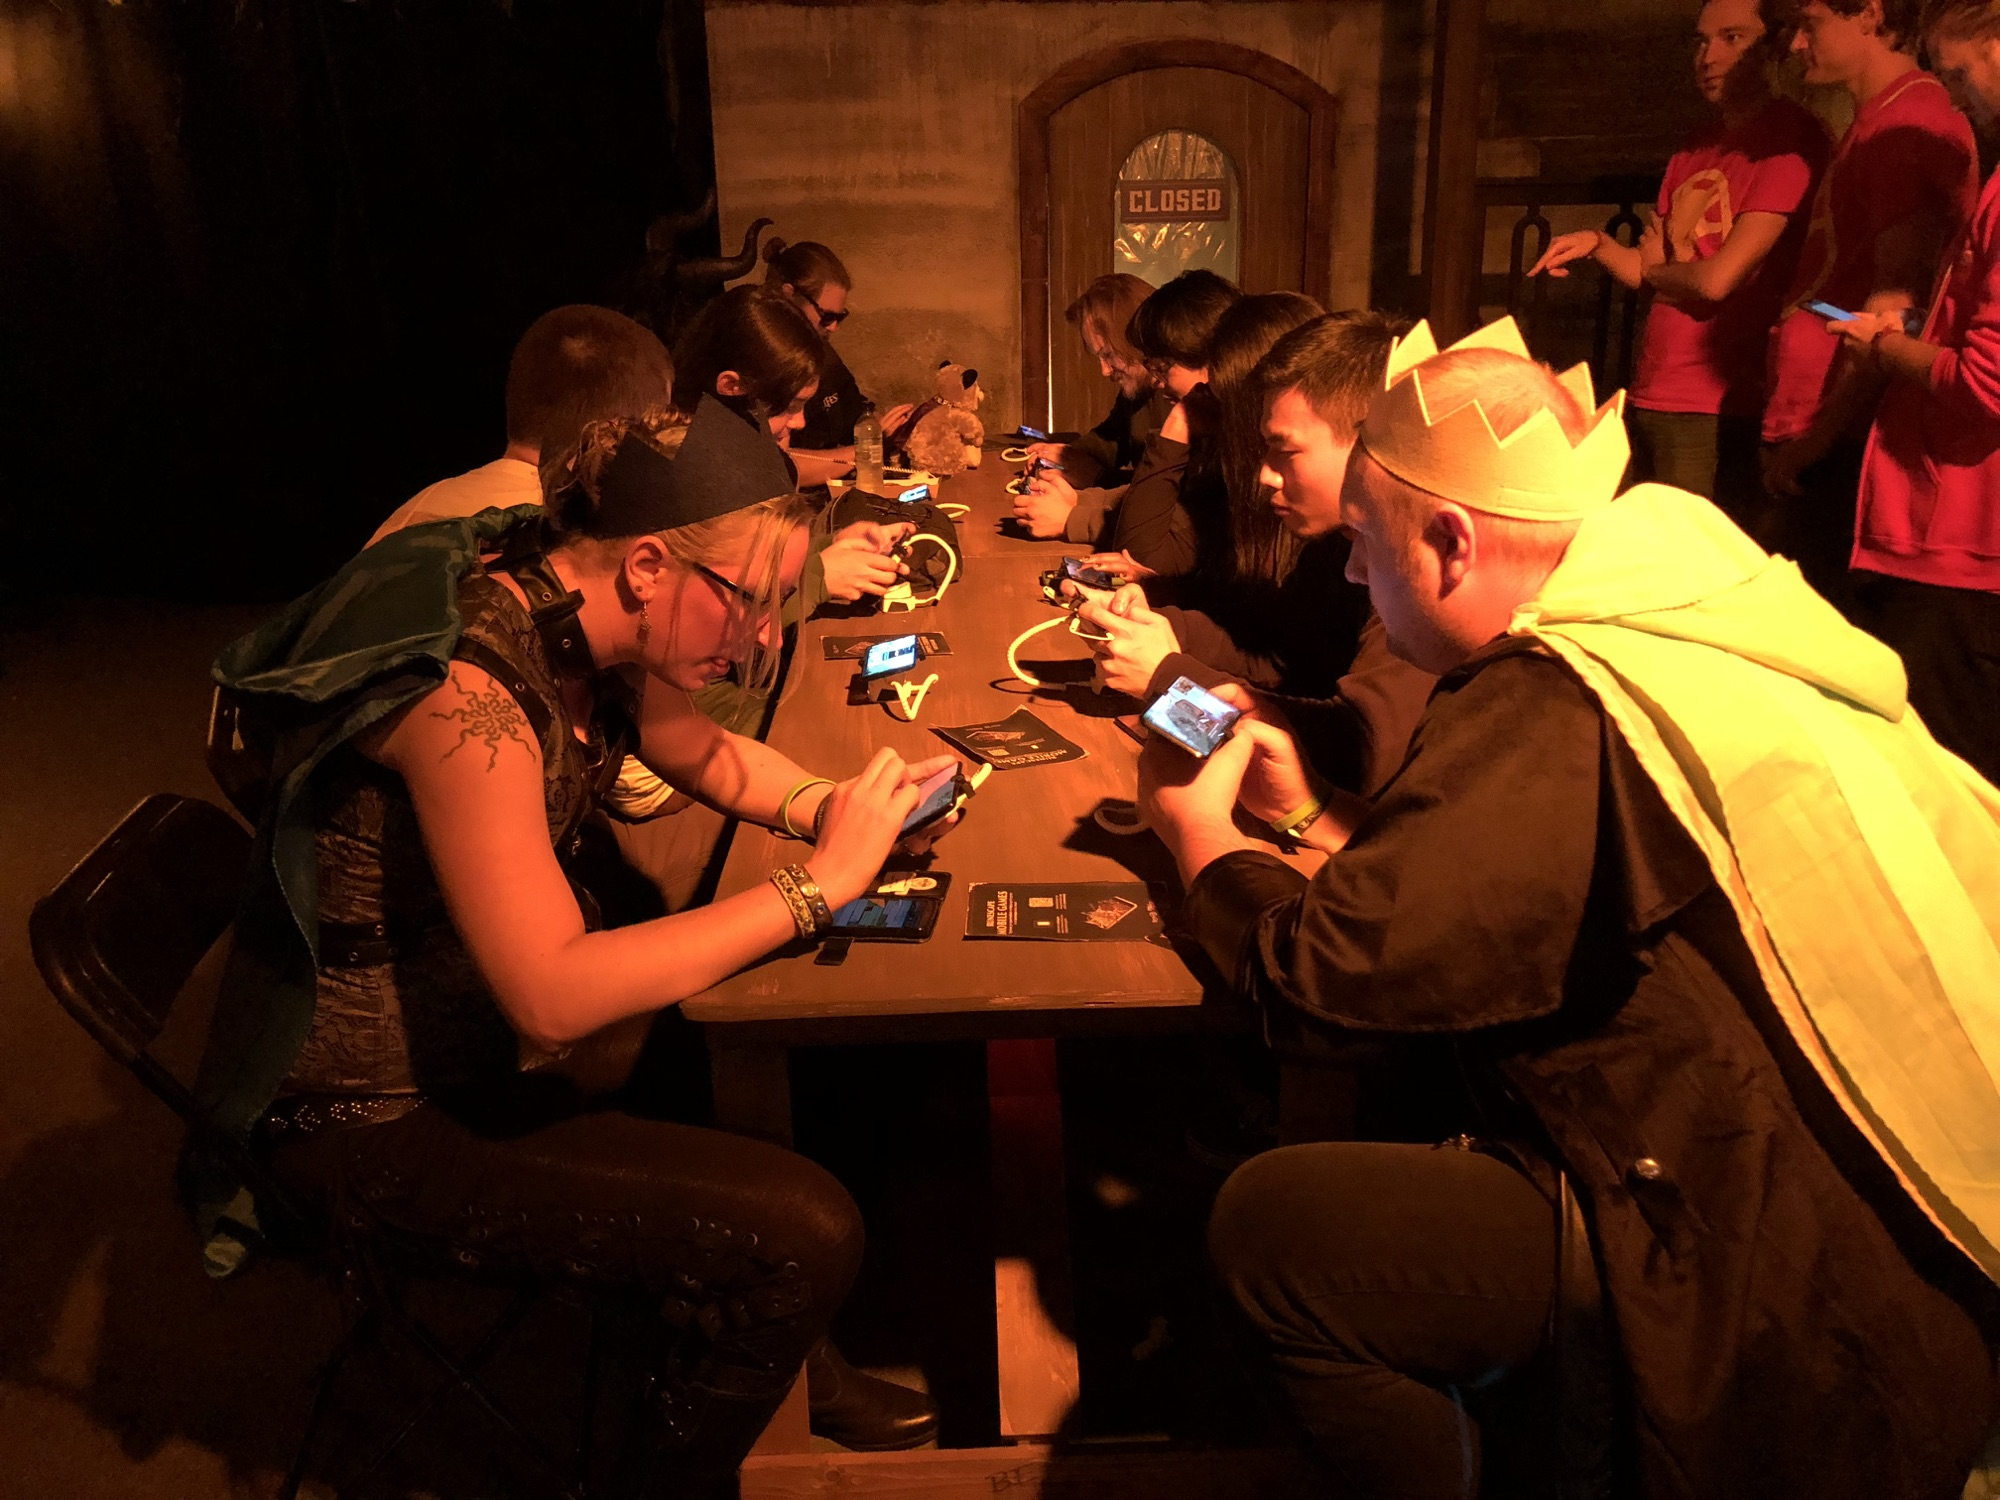 RuneFest 2018: 'RuneScape' Is About to Take the World by Storm on